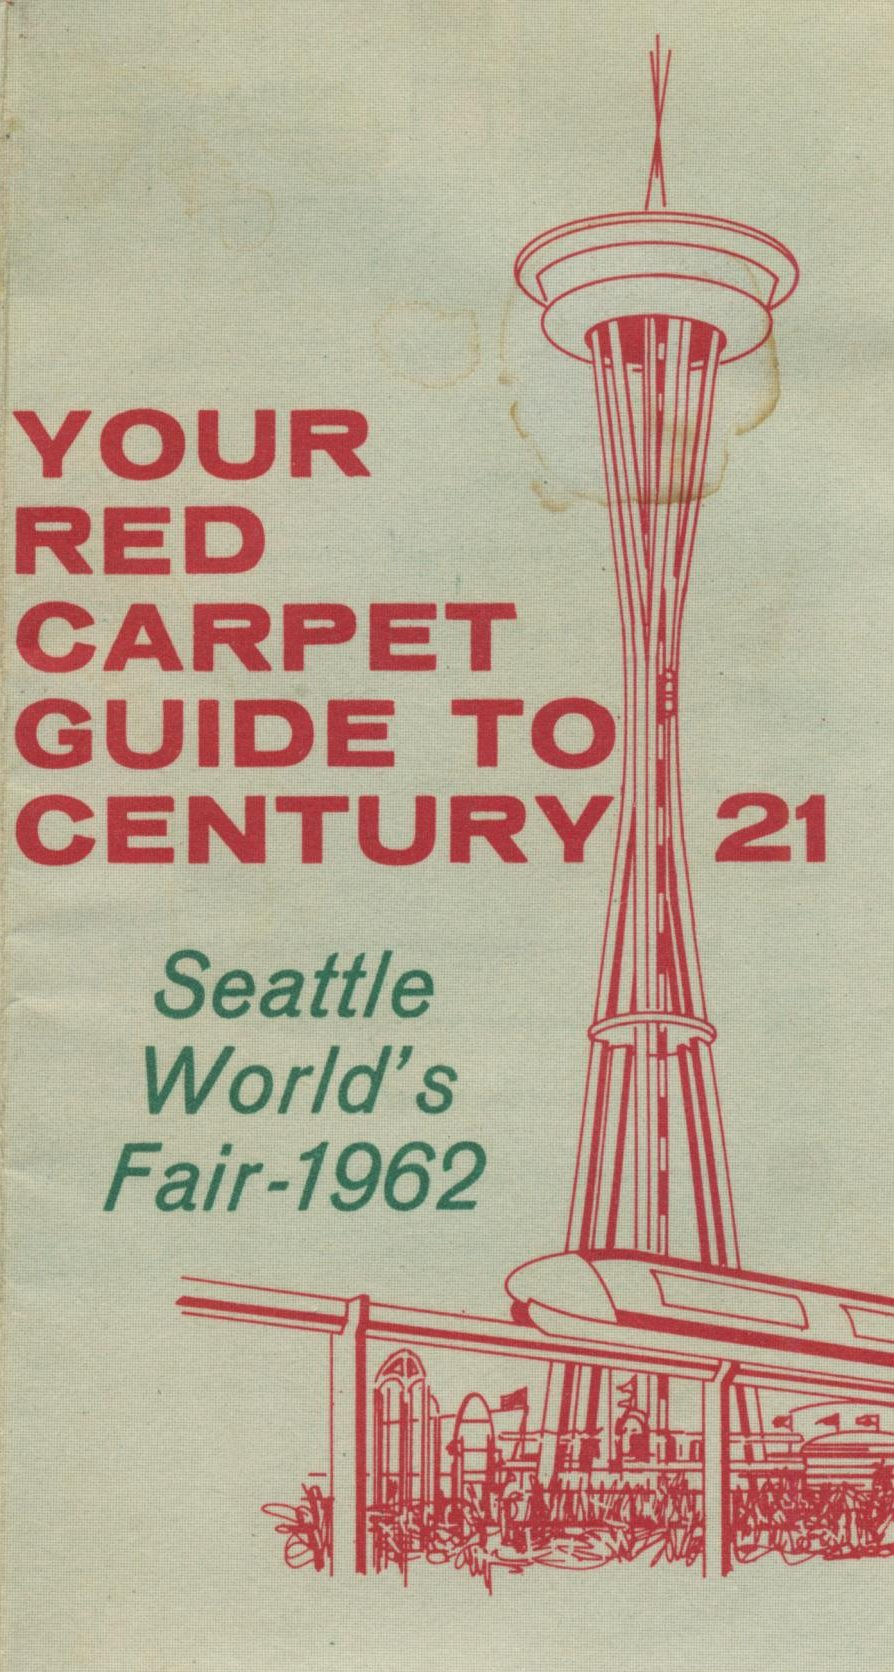 1962 Seattle World's Fair: Your Red Carpet Guide to Century 21